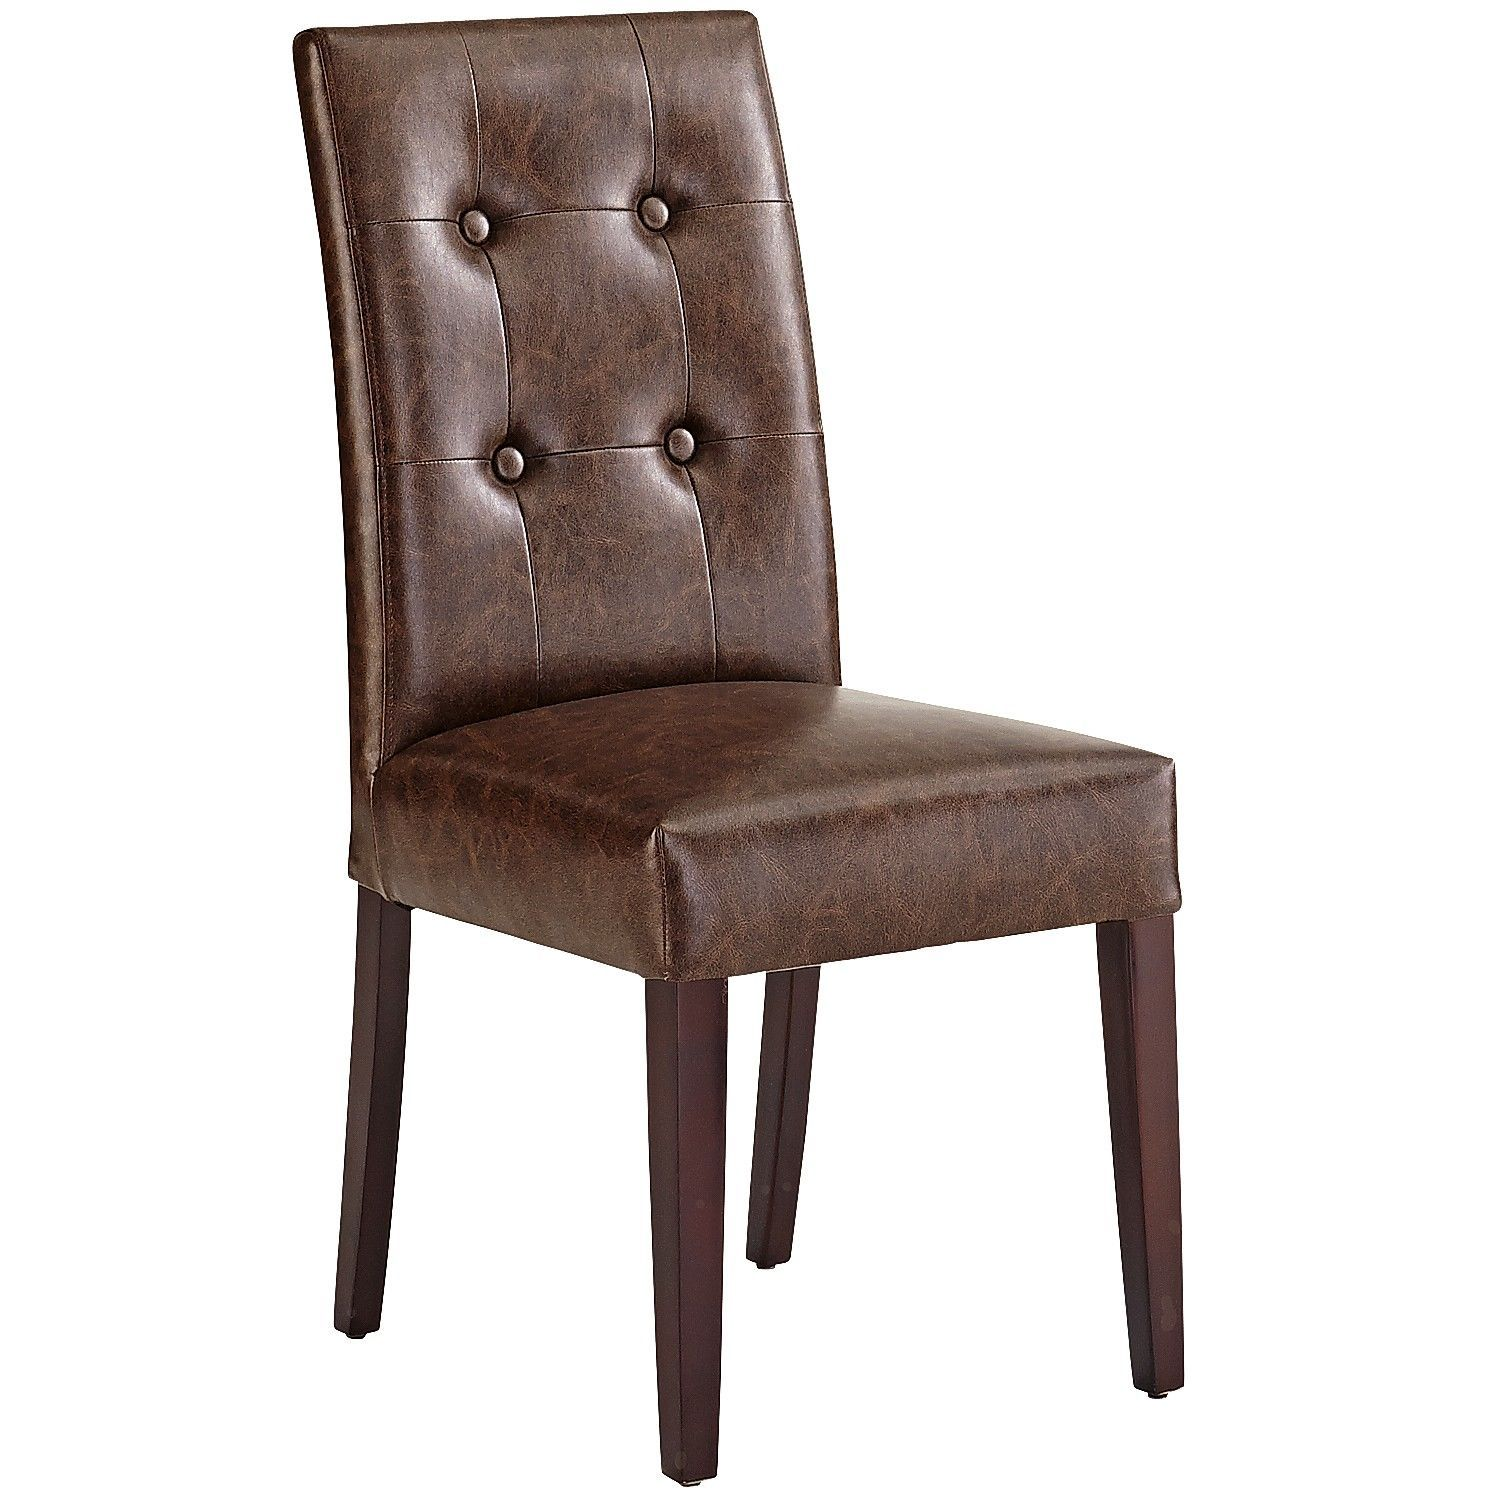 Mason Dining Chair  Coffee  Pier 1 Imports  Home Decor Prepossessing Dining Room Chairs Pier One Review